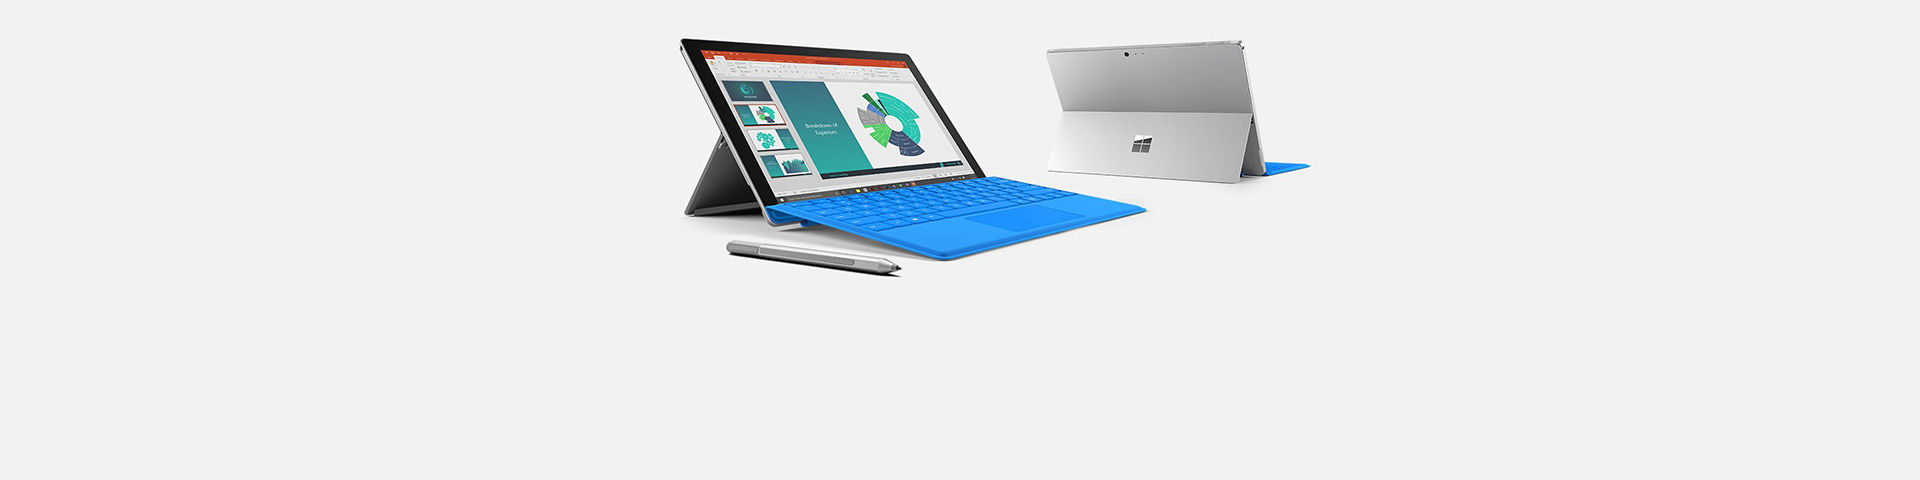 Surface Pro 4-apparaten